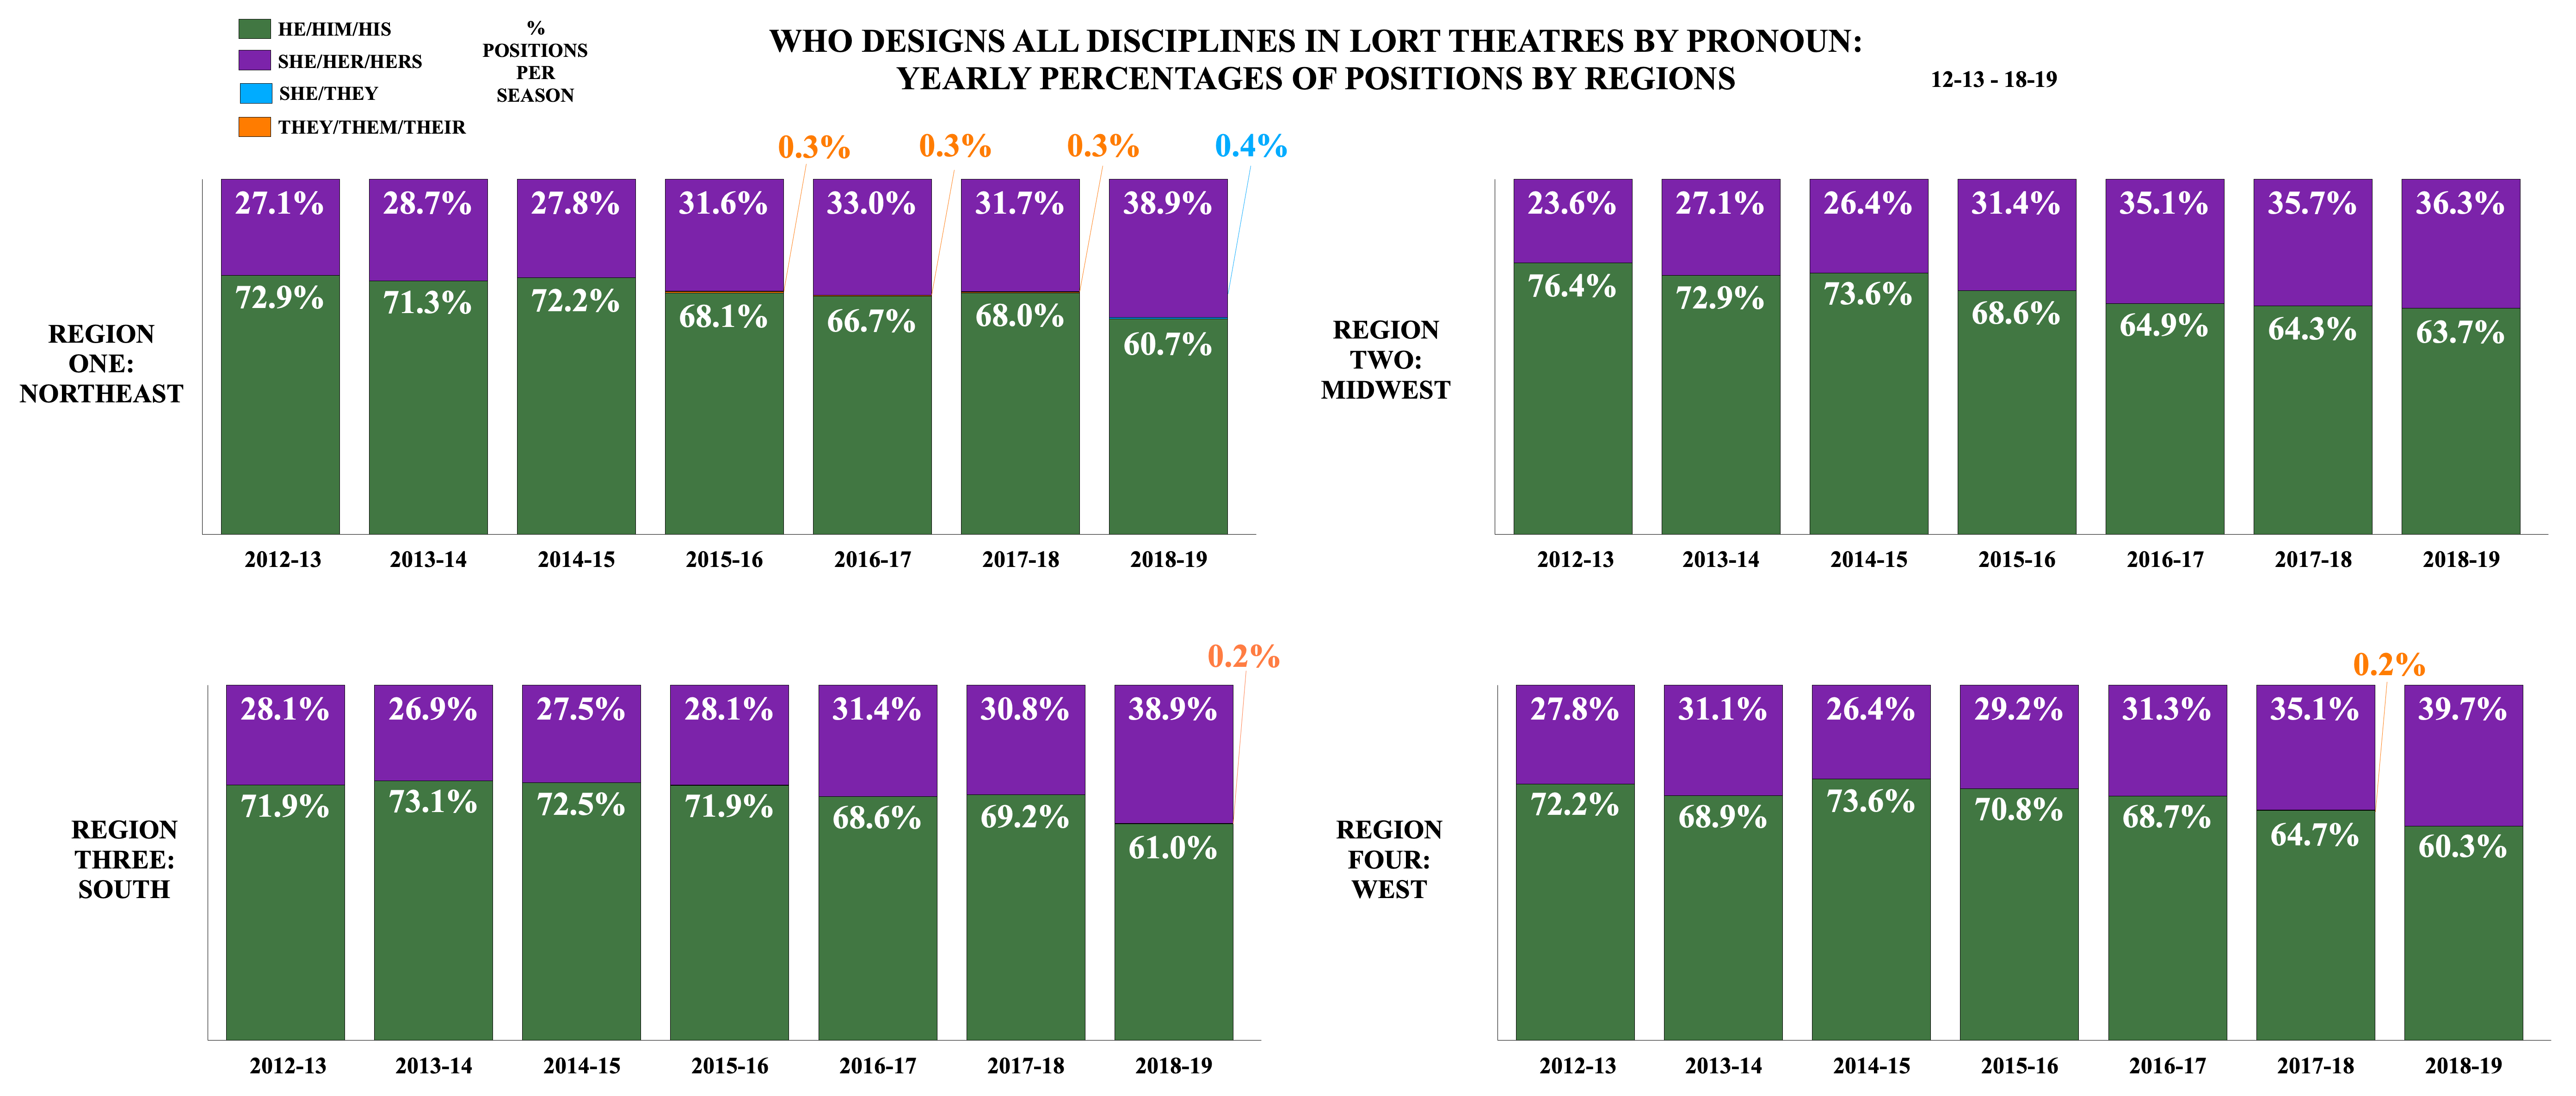 Who Designs All Disciplines in LORT Theatres by Pronoun: Yearly Percentages of Positions by Regions